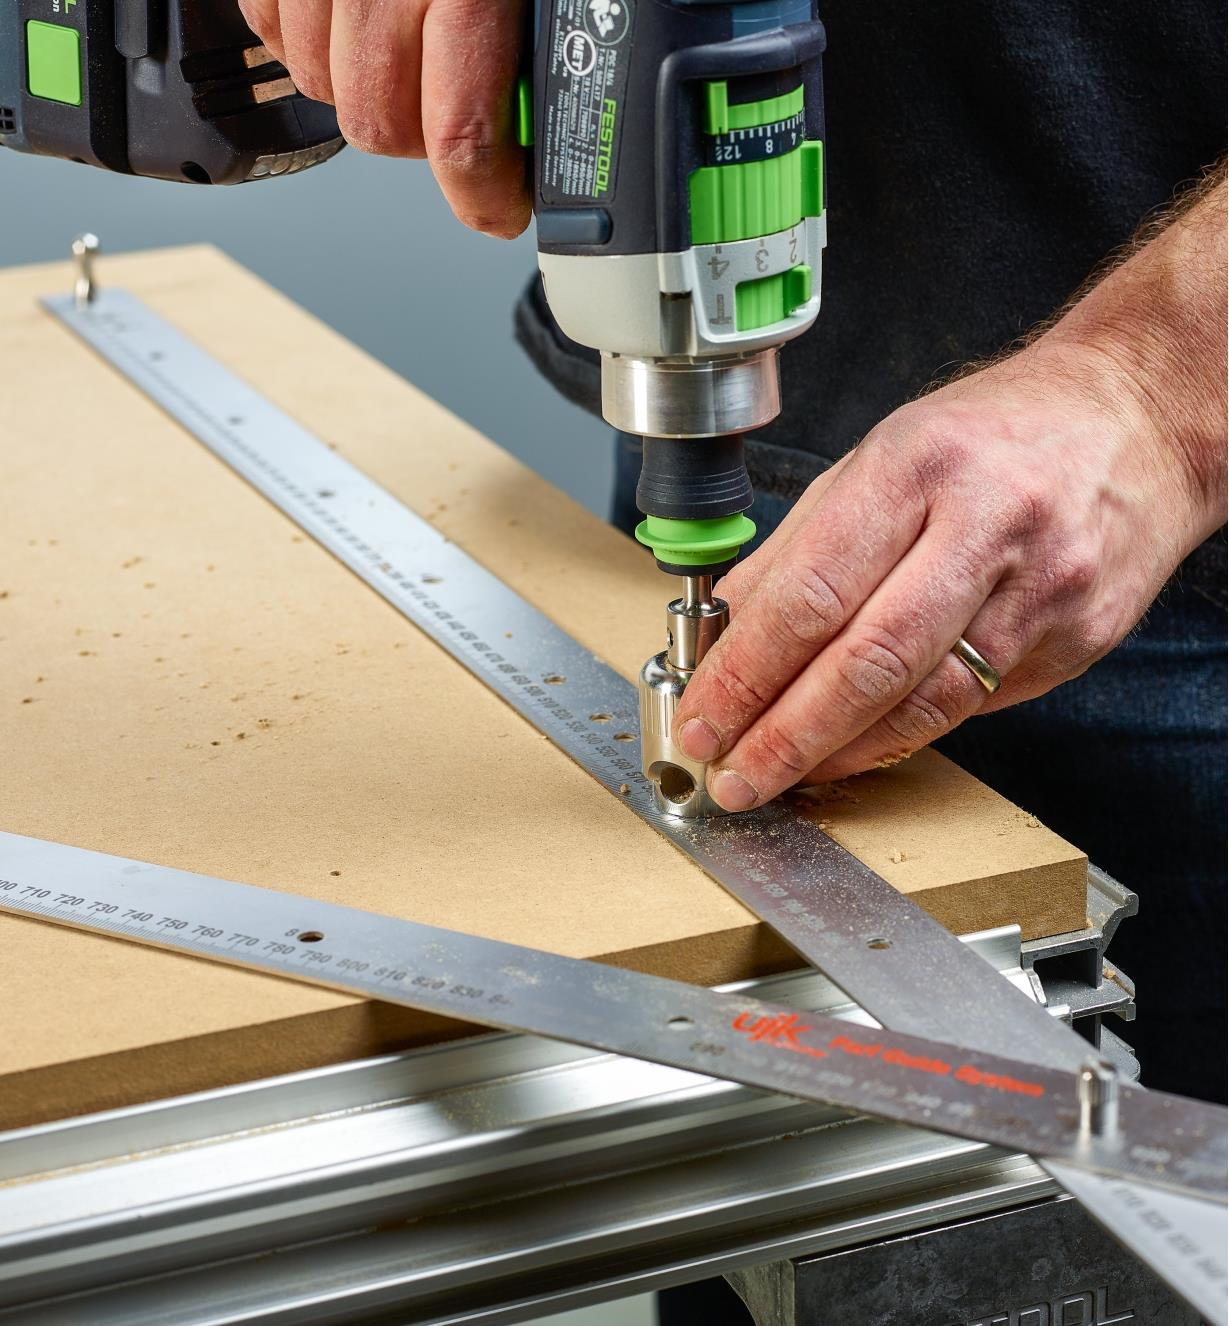 Using the pair of 1m rules as templates for drilling starter holes in a work surface